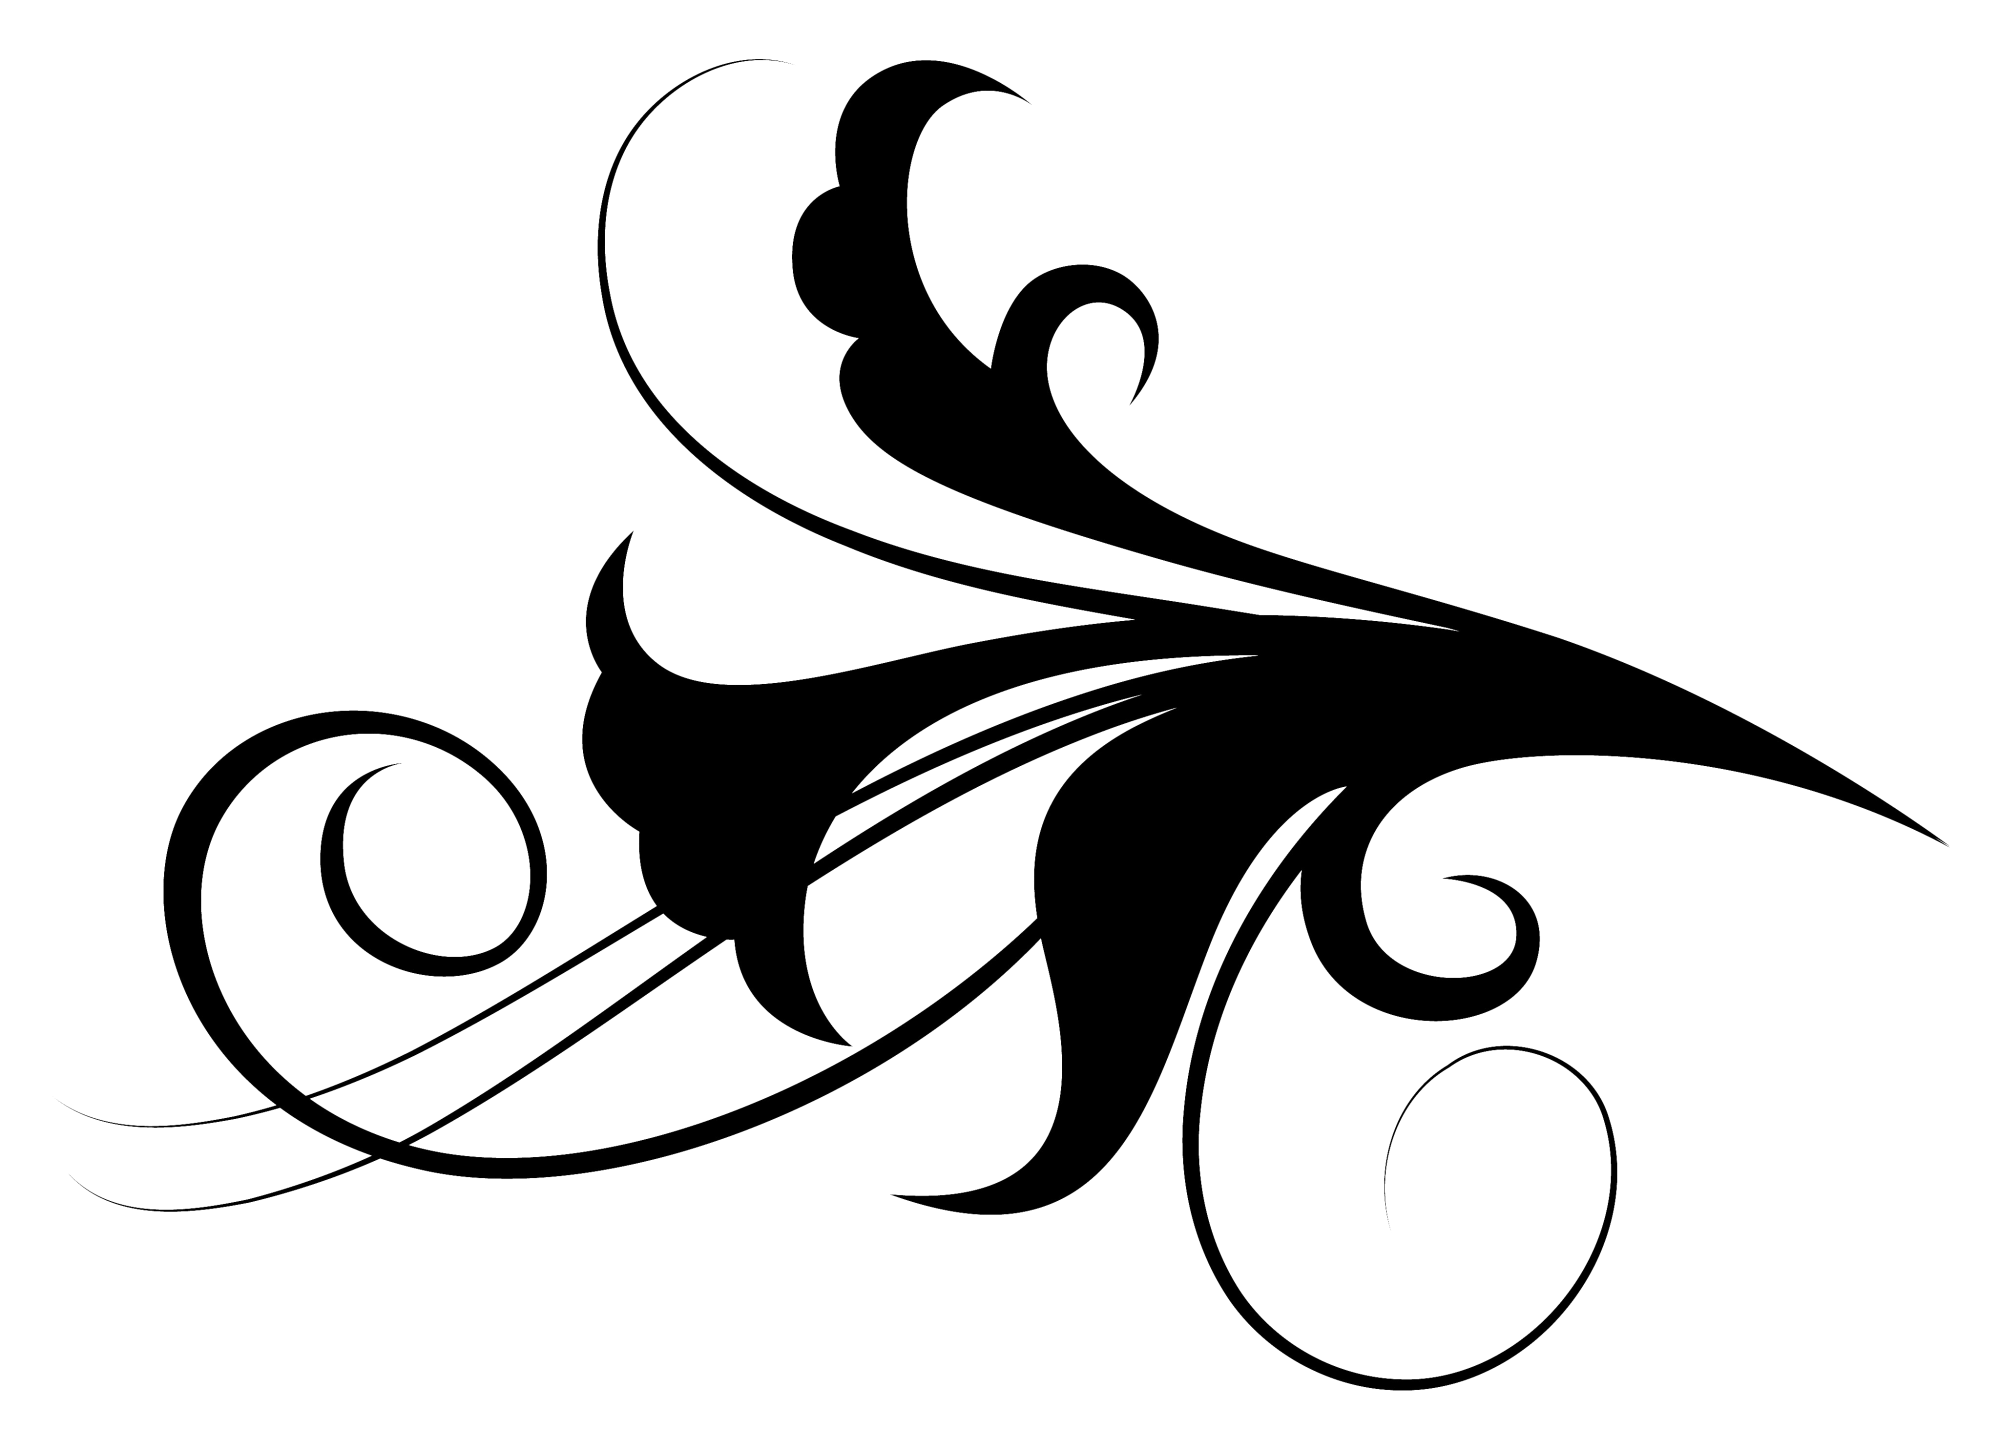 Free black and white clipart images filagree design. Graphic filigree png download